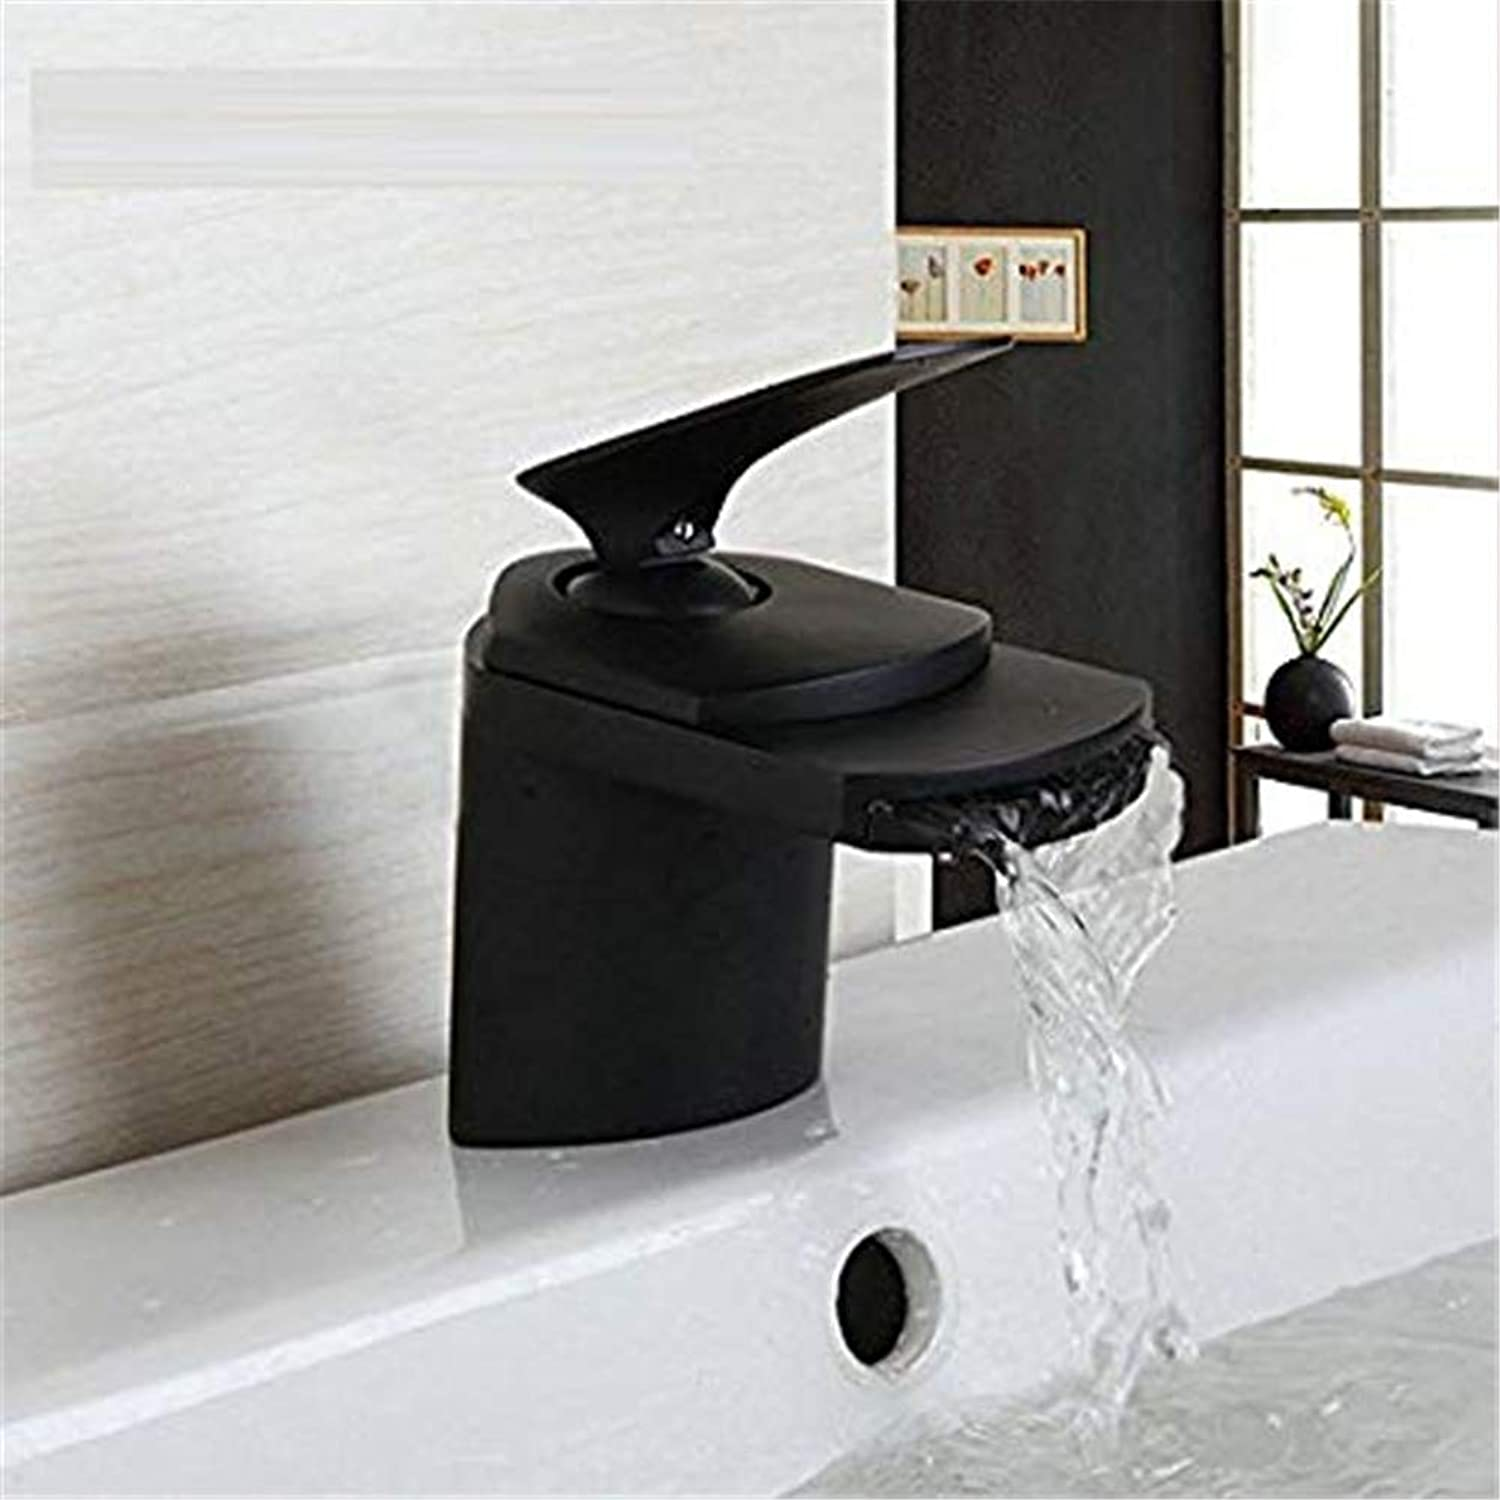 redOOY Taps Bathroom Faucet Black Orb Deck Mount Widespread Basin Sink Faucet Mixer Taps Water Taps Taps